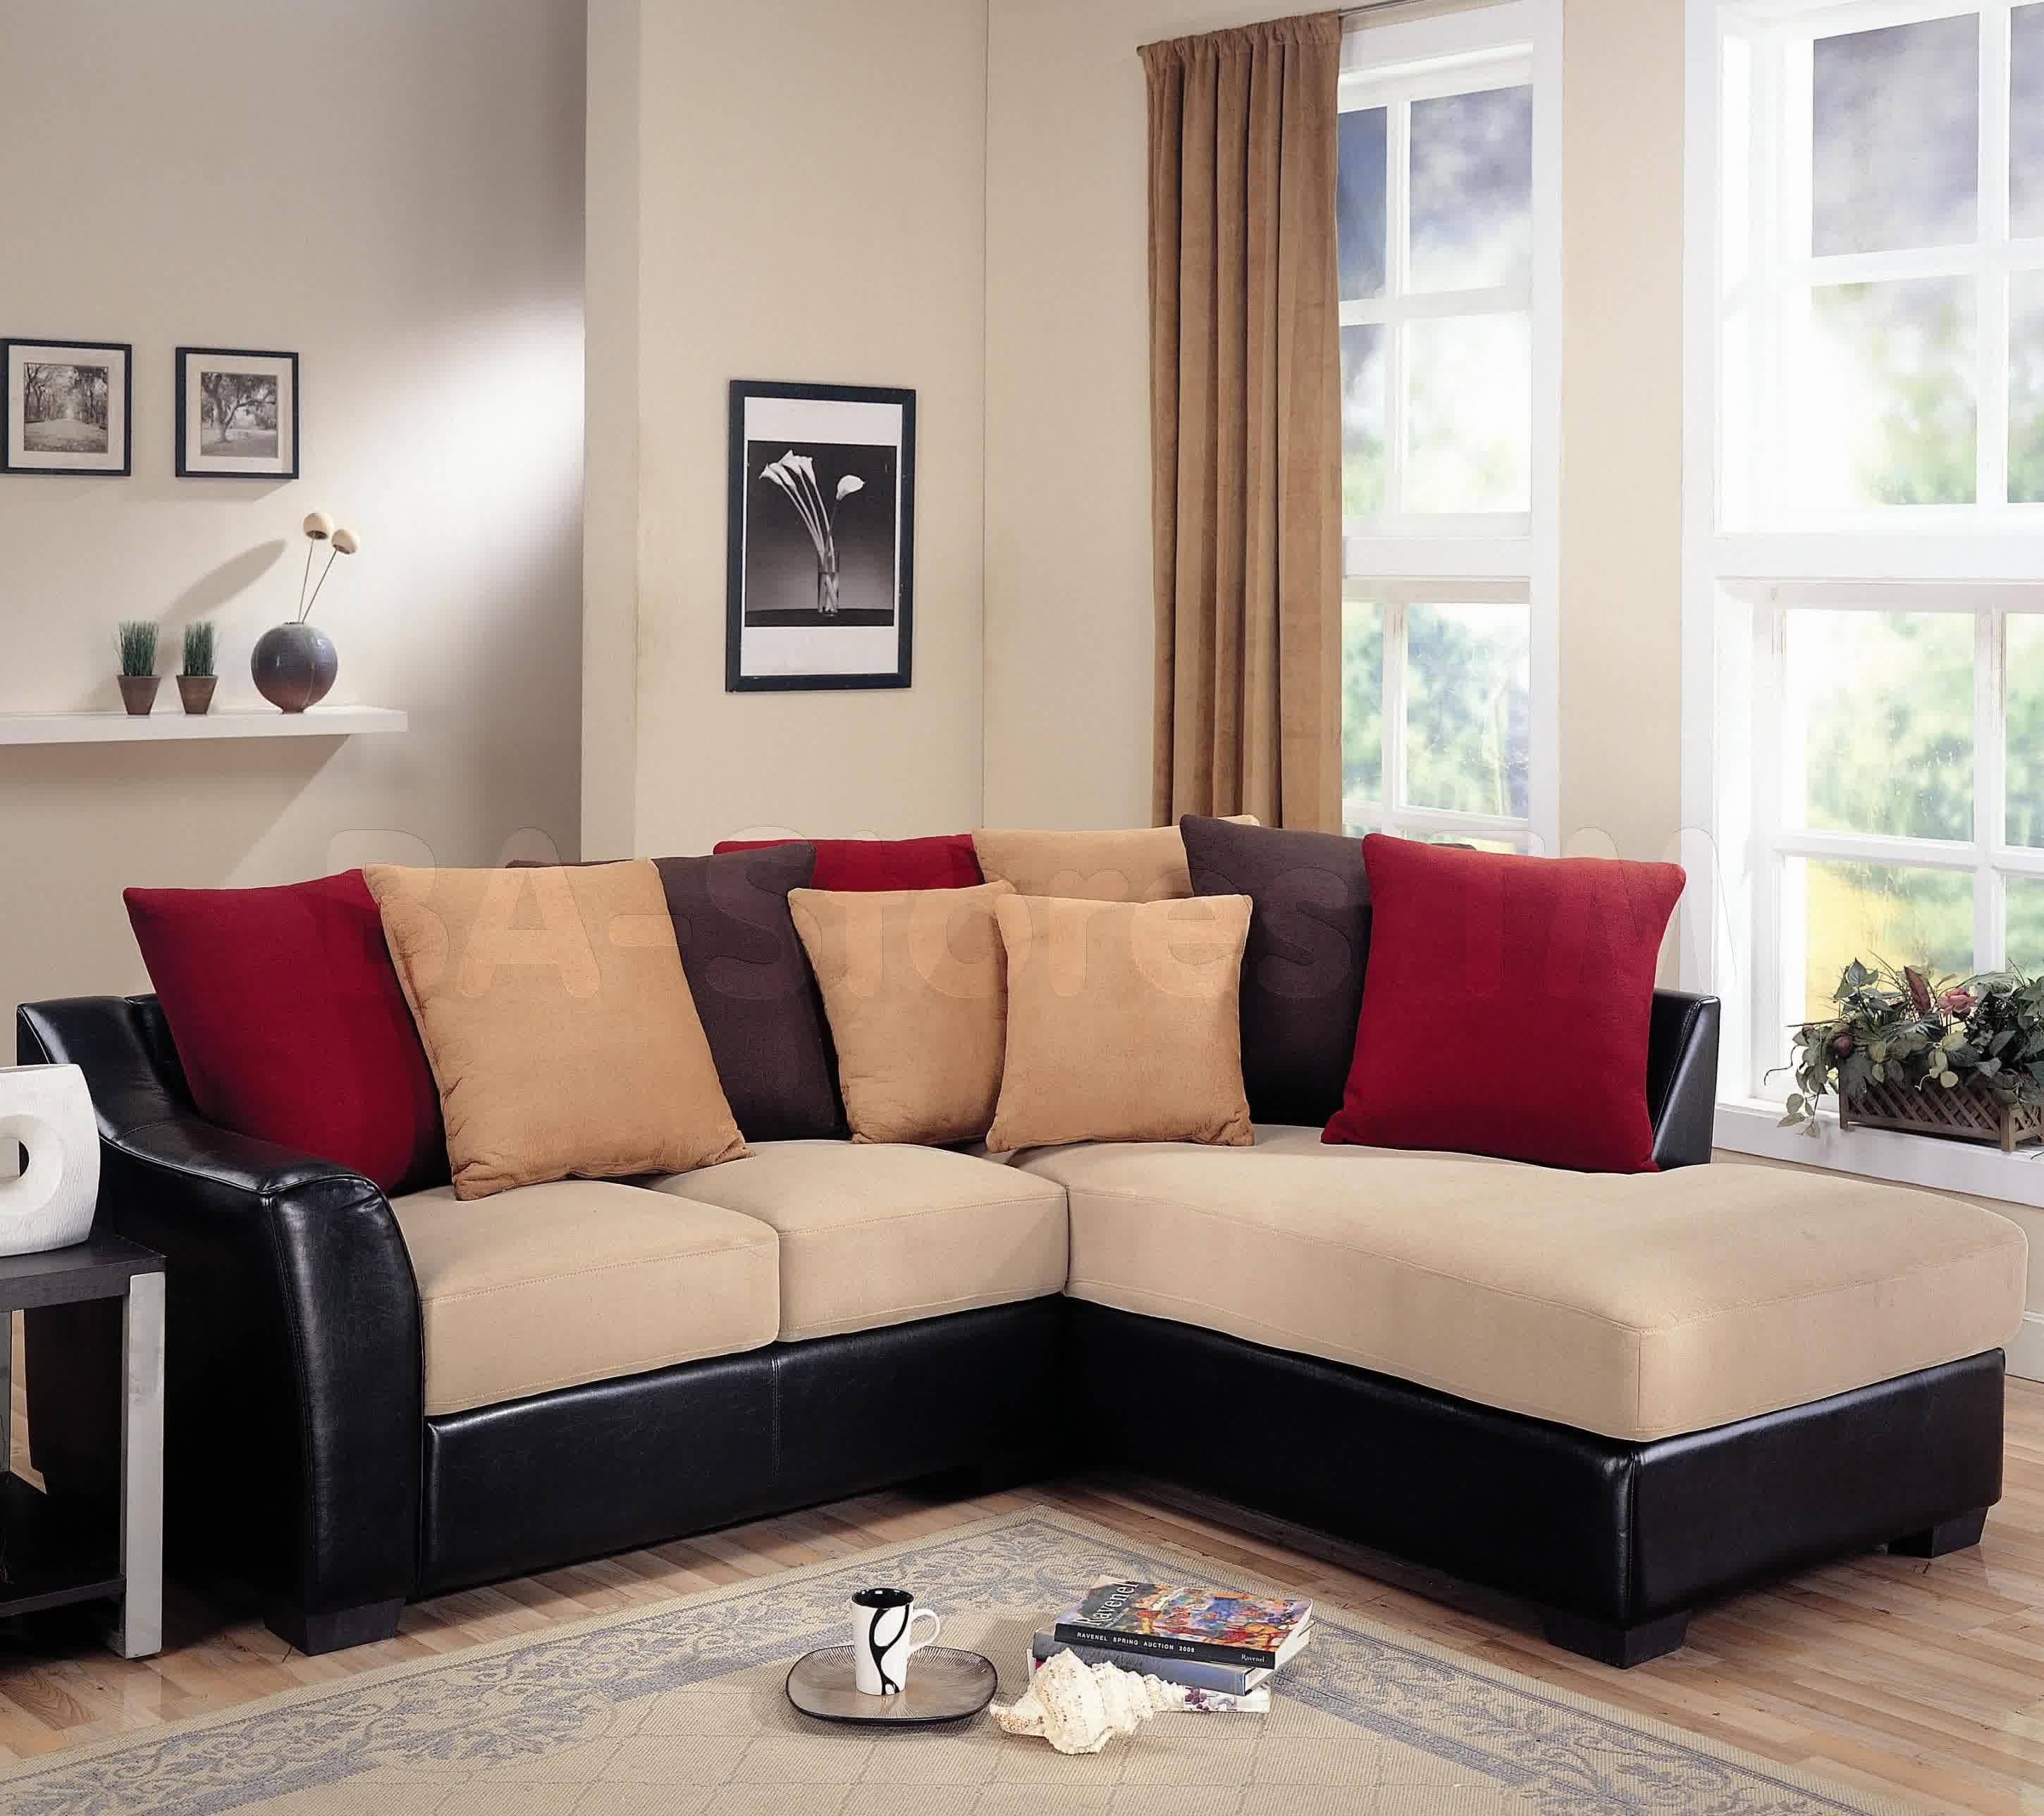 couches royal number affordable sectional item furniture sofa products